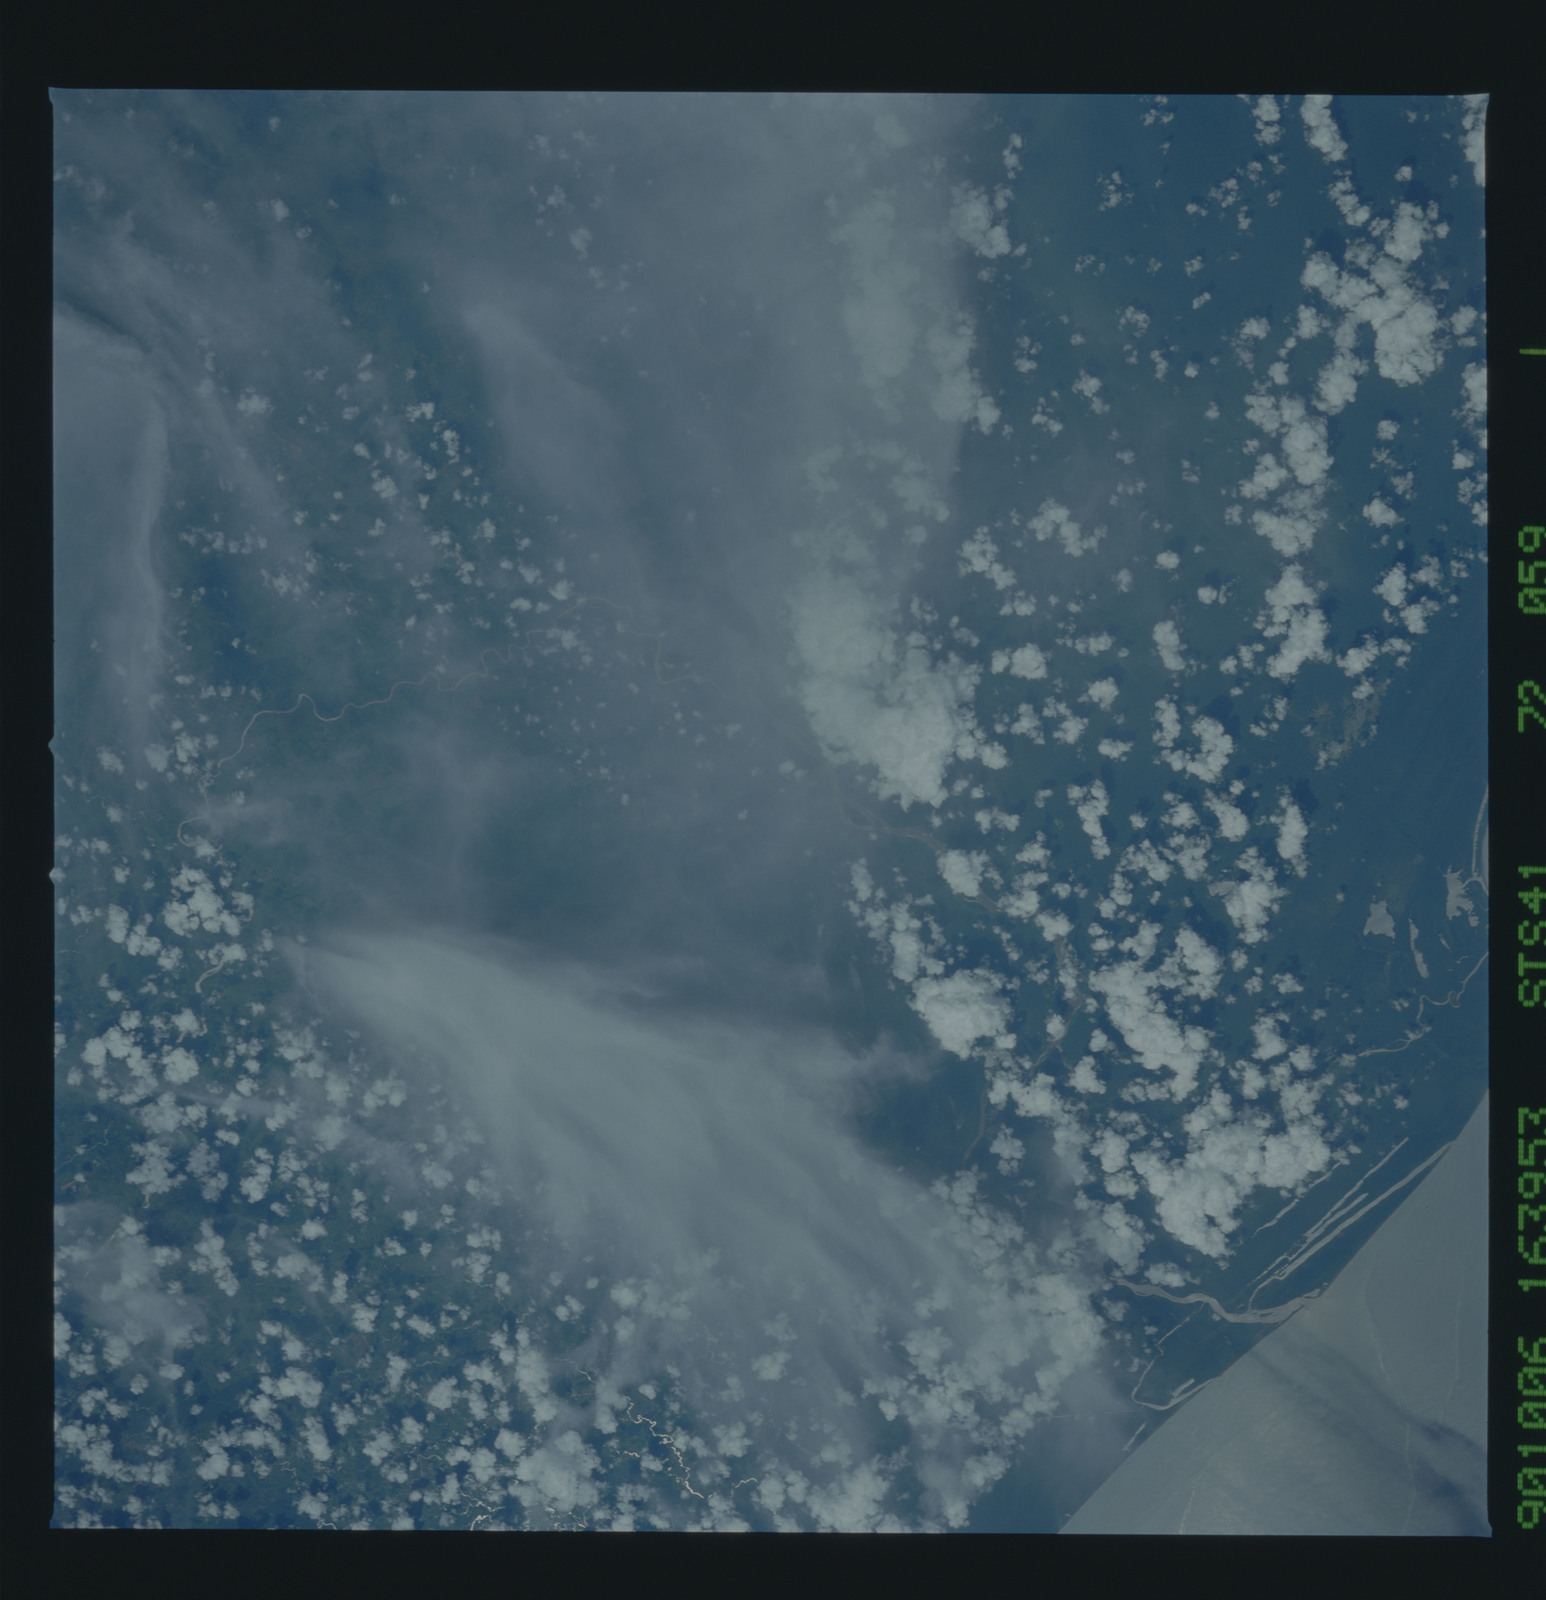 S41-72-059 - STS-041 - STS-41 earth observations